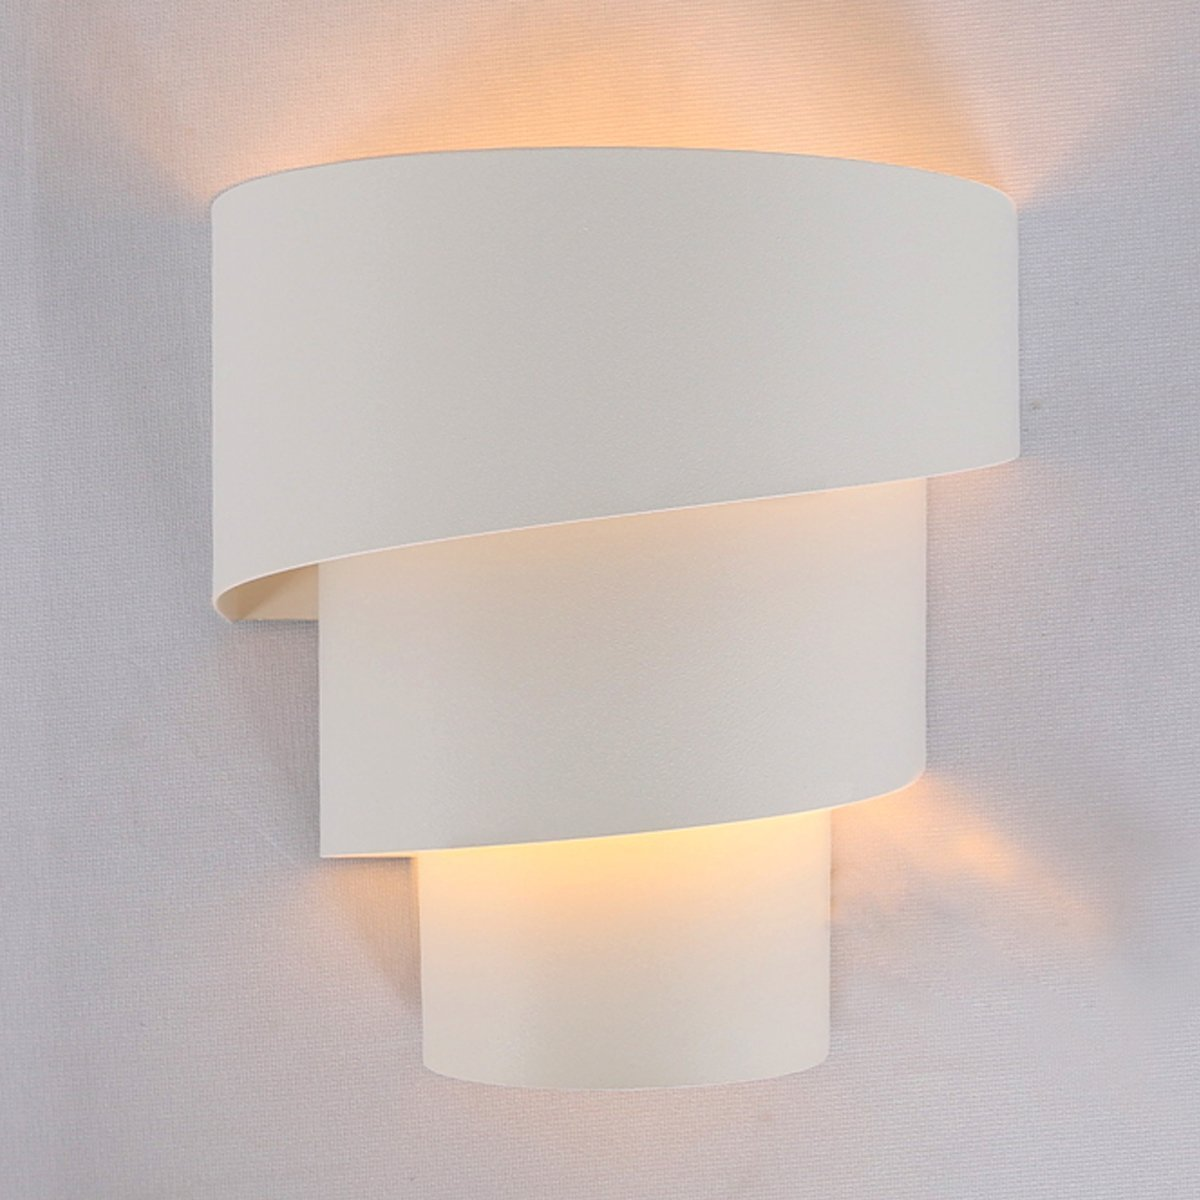 Get Ations Tuk789 Vip Wall Lights Lamp Led Sconce Night Light Install Anywhere Warm White For